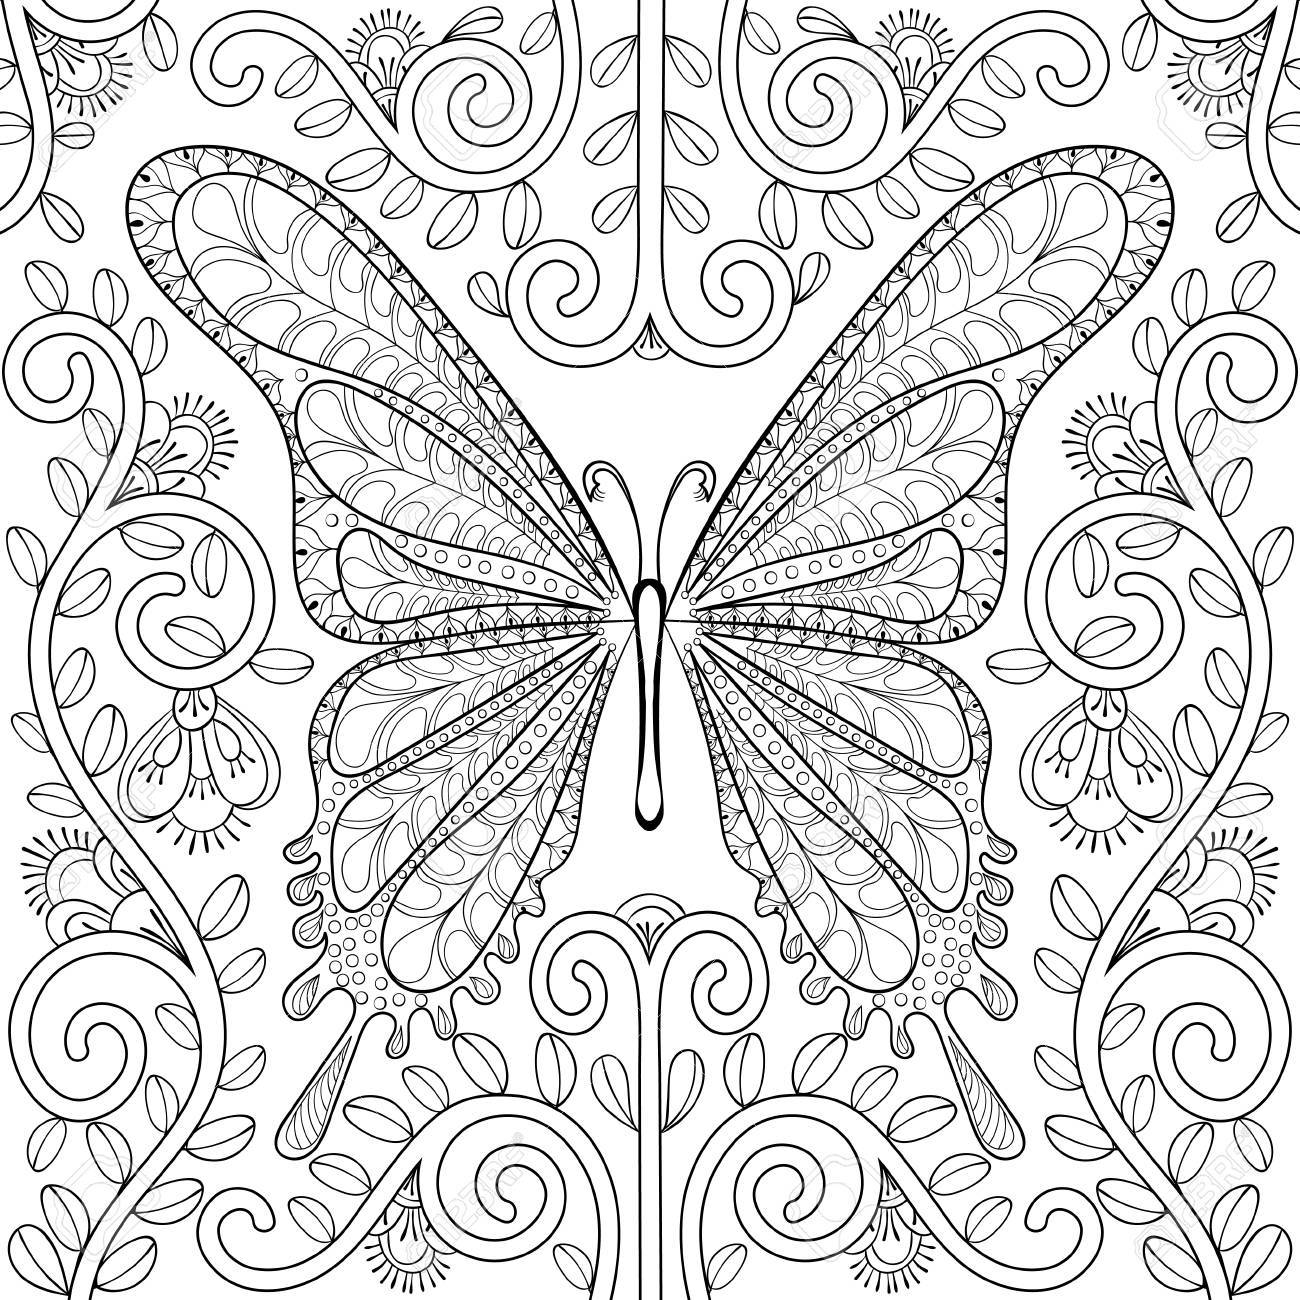 Adult Coloring Book With Butterfly In Flowers Pages, Zentangle ...